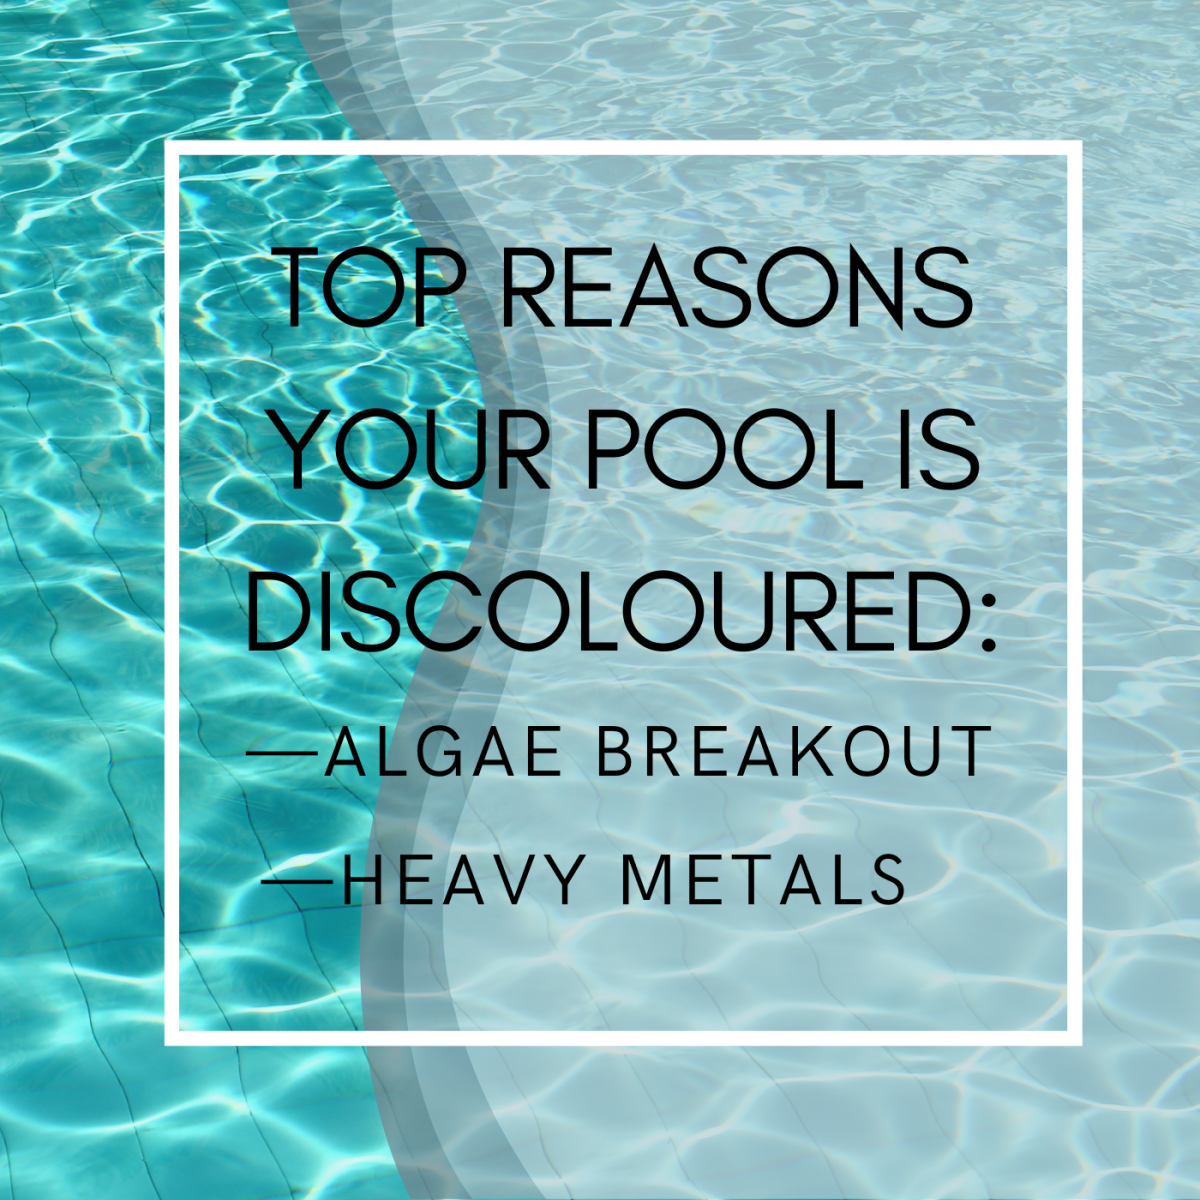 Learn why your pool is that unpleasant color and how to fix it.